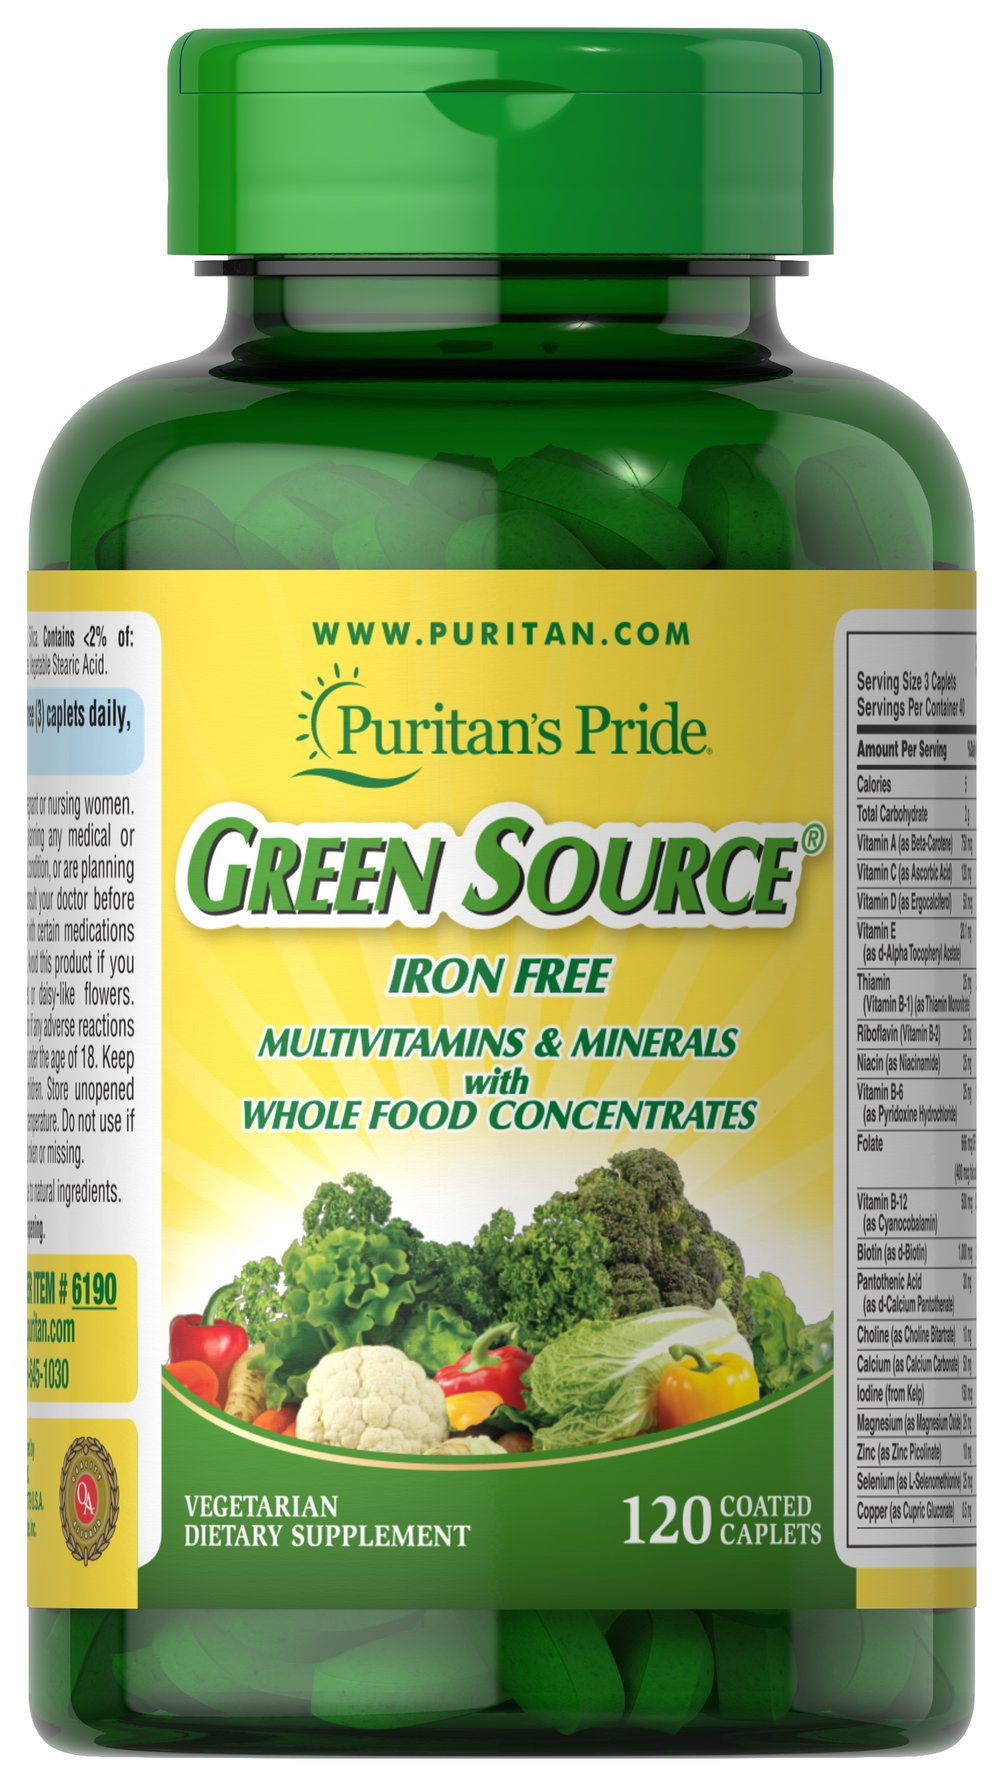 Green Source® Iron Free Multivitamin & Minerals <p>This concentrated formula is Iron Free and contains potent food source nutrients to provide essential vitamins, minerals, enzymes and amino acids. It also provides all the naturally occurring active constituents of whole foods. </p> 120 Caplets  $32.99